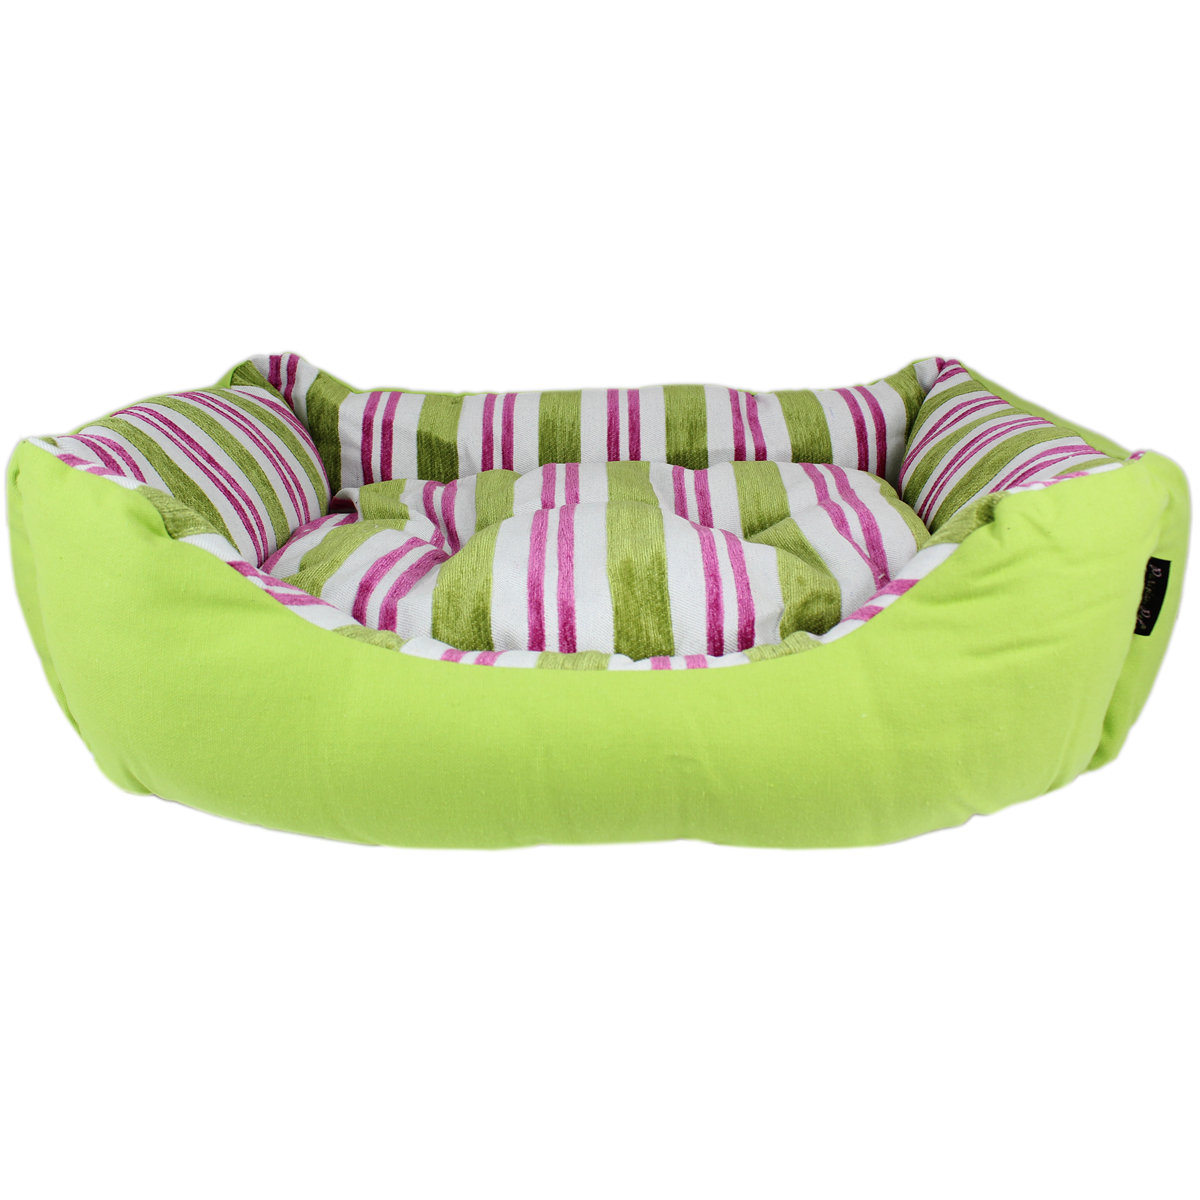 Canvas Striped Dog Bed - Green